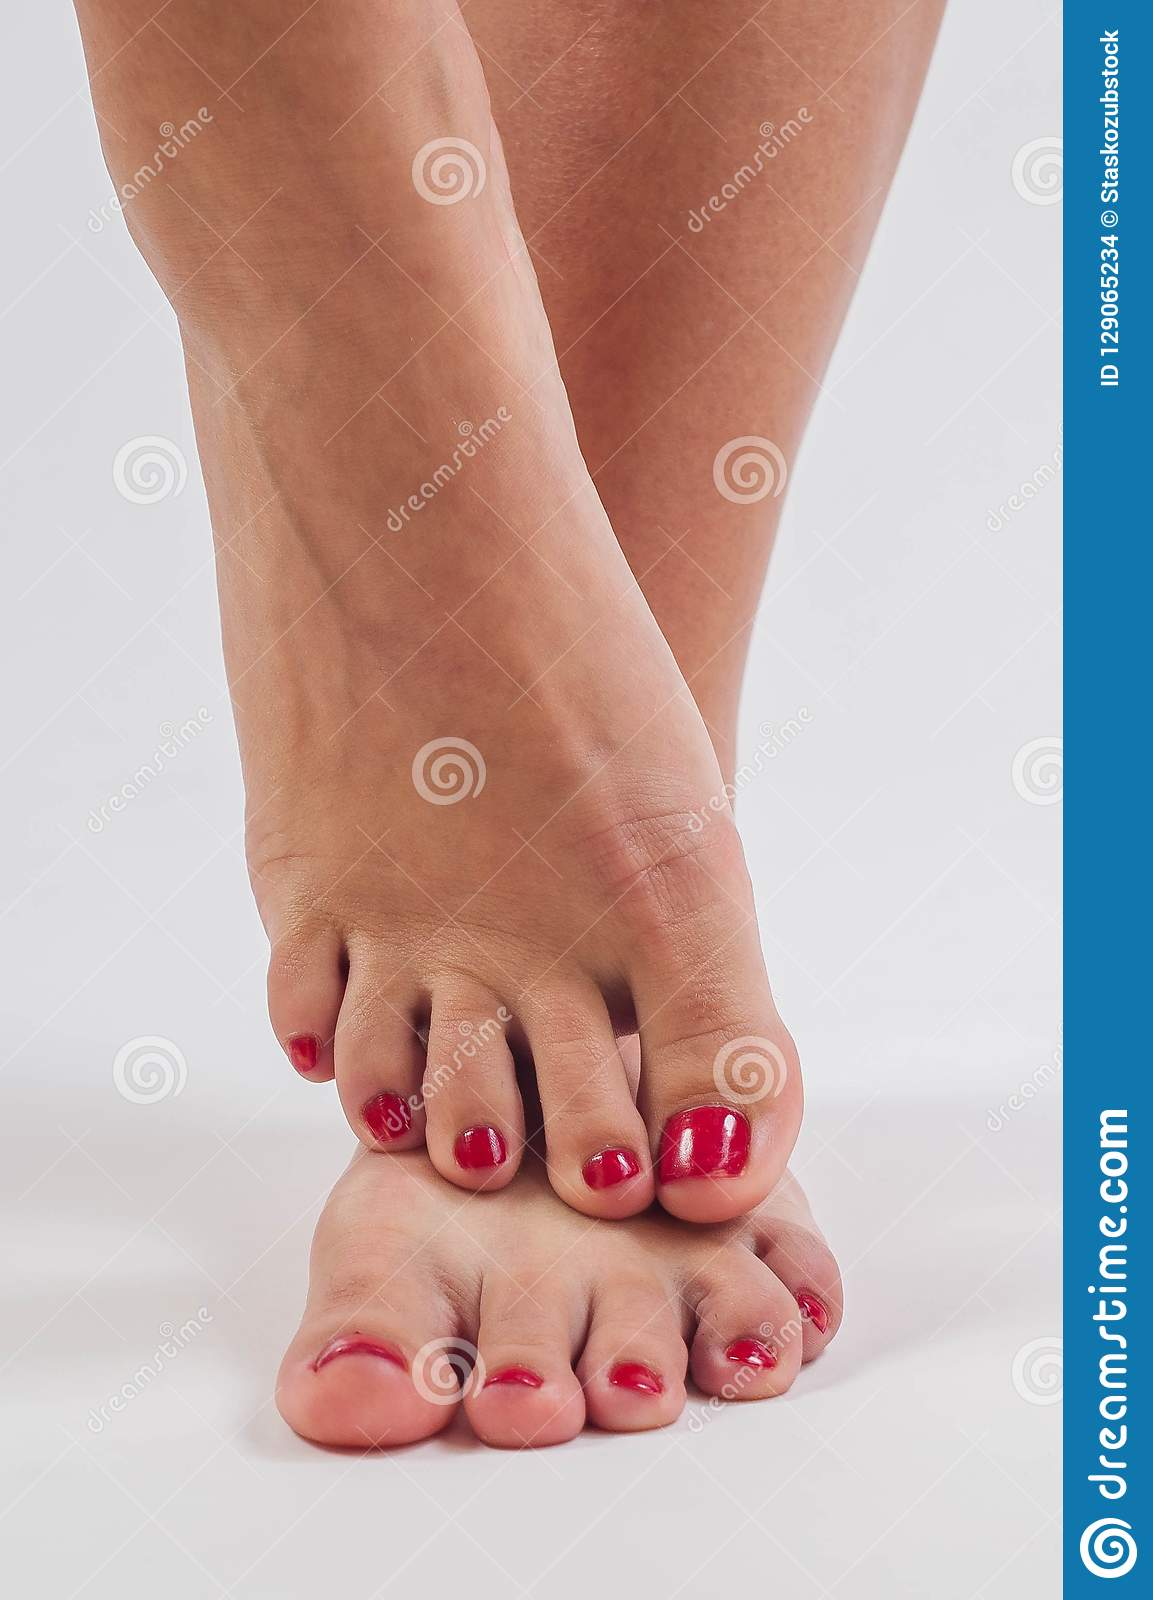 girl pretty toes and feet stock photo image of cute 129065234